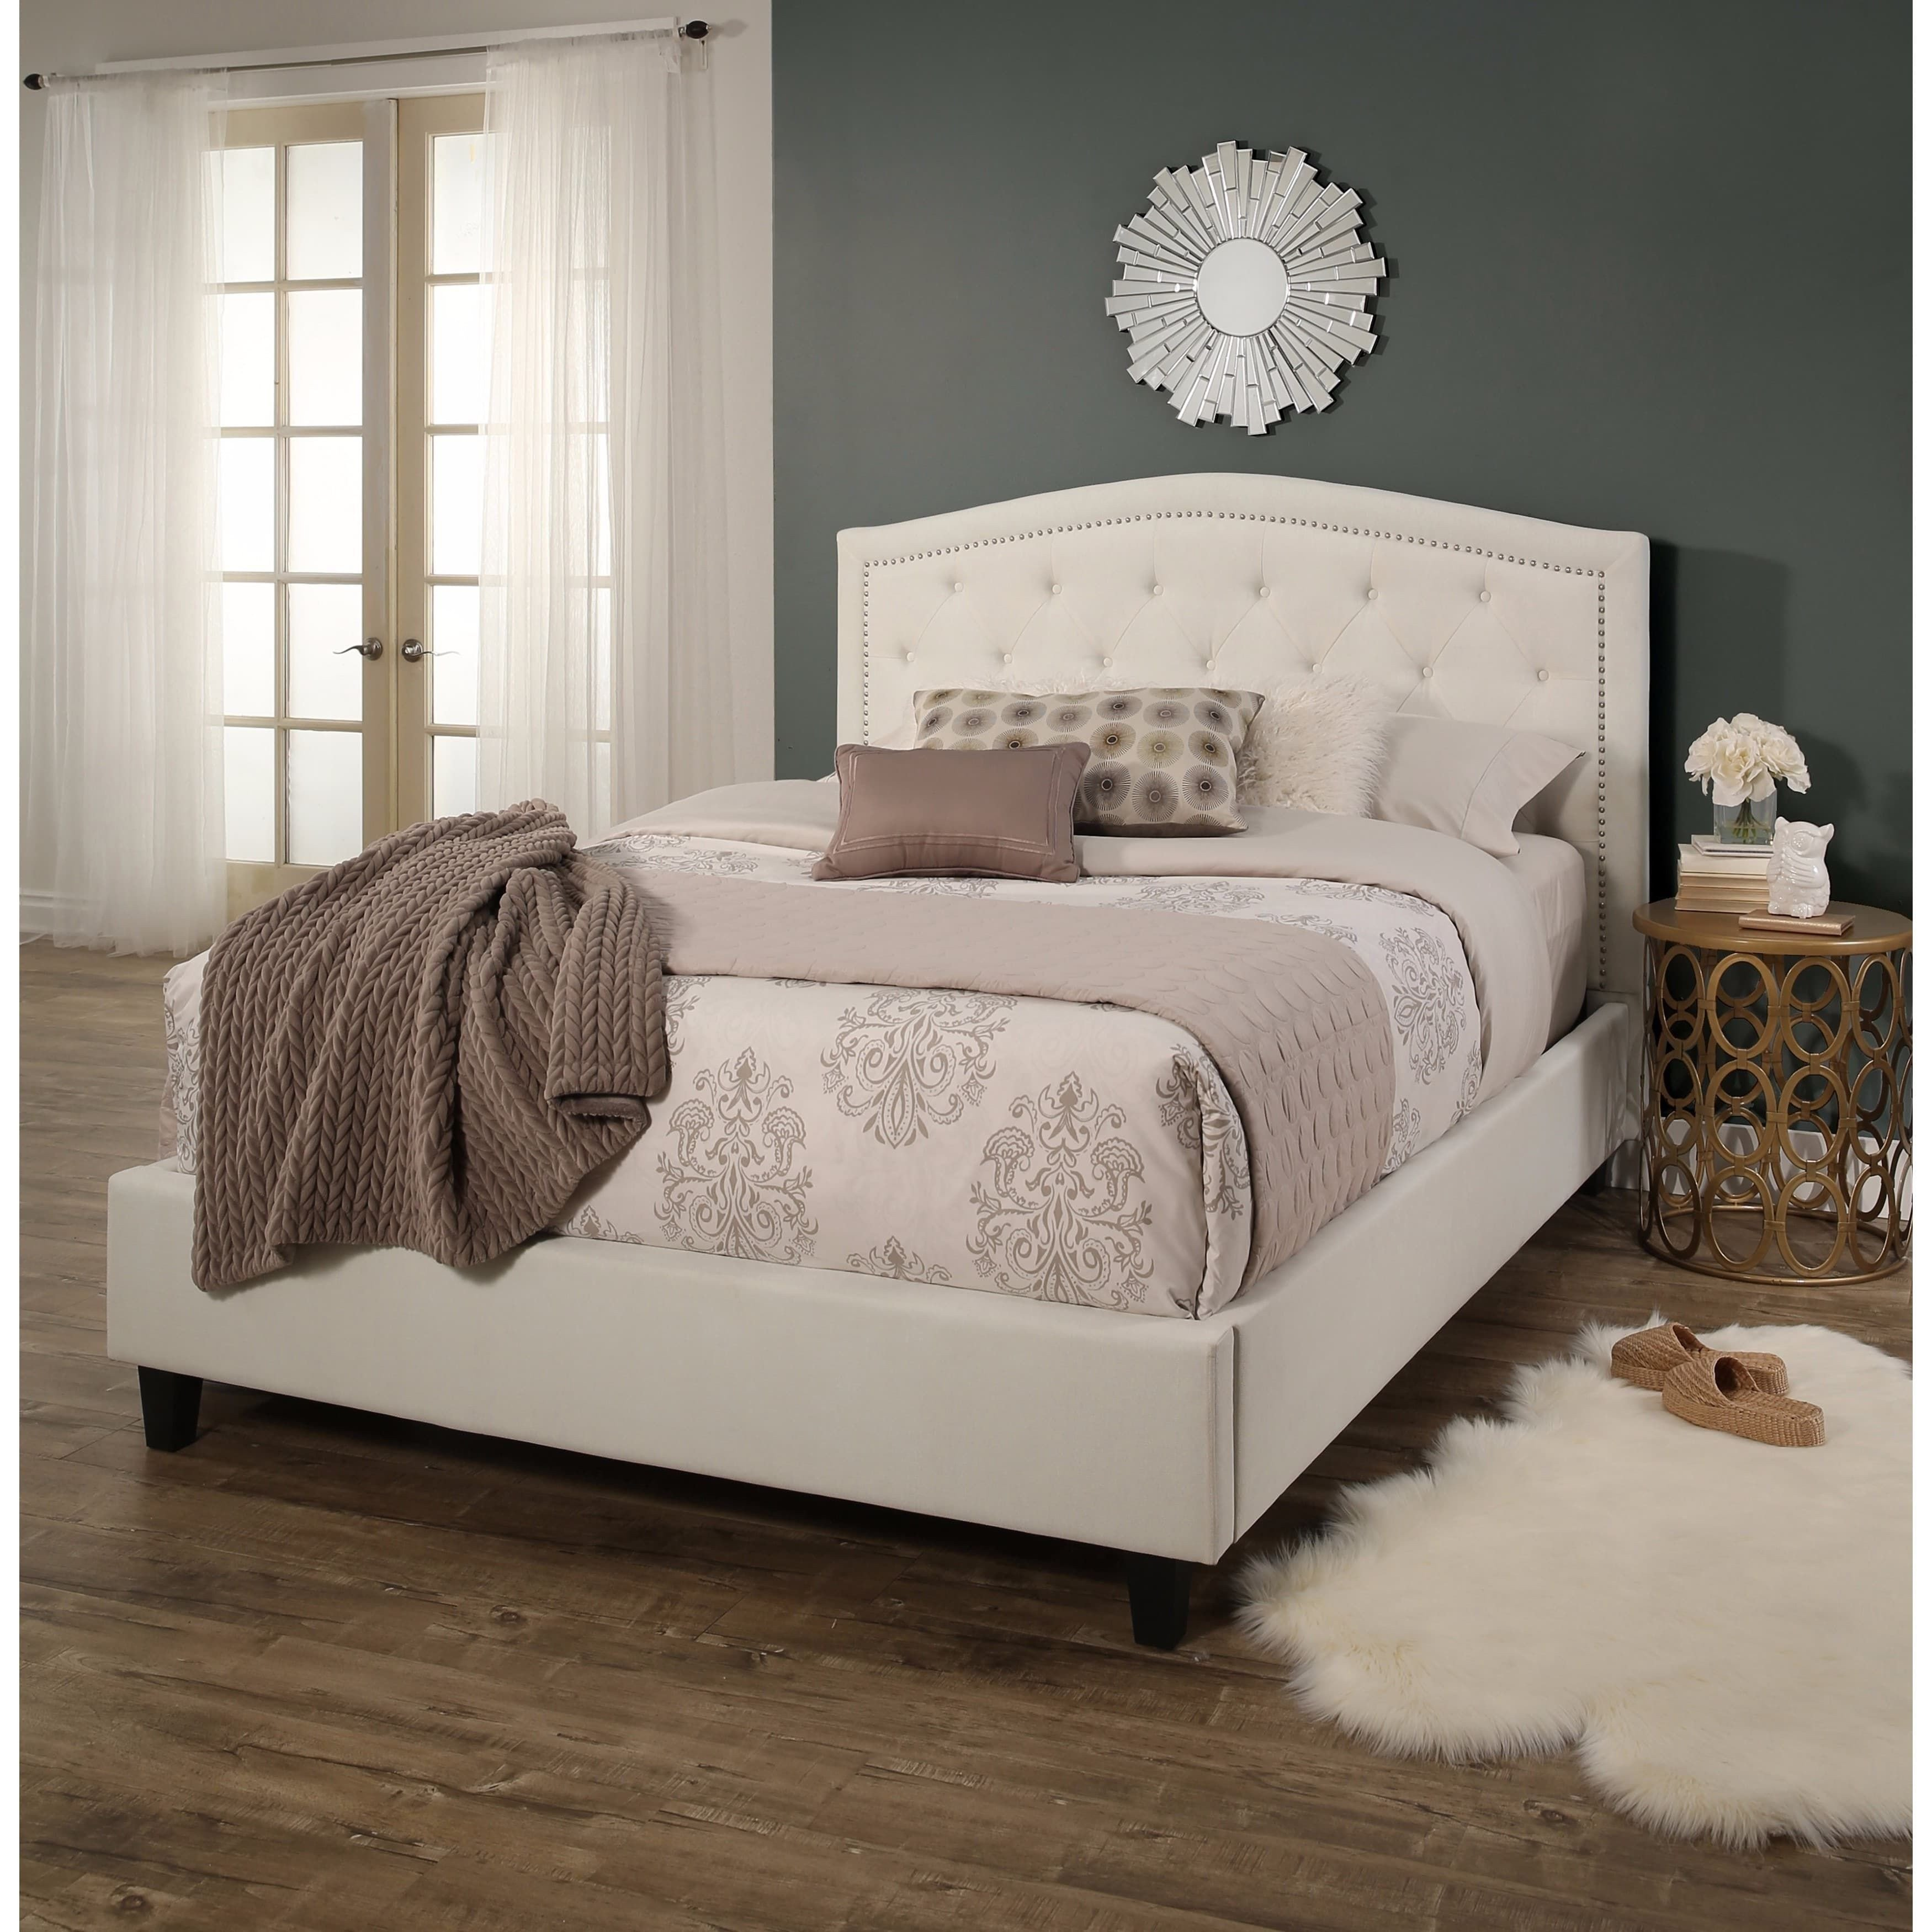 Used King Size Bedroom Set New Virgil Upholstered Tufted Queen Bed by Christopher Knight